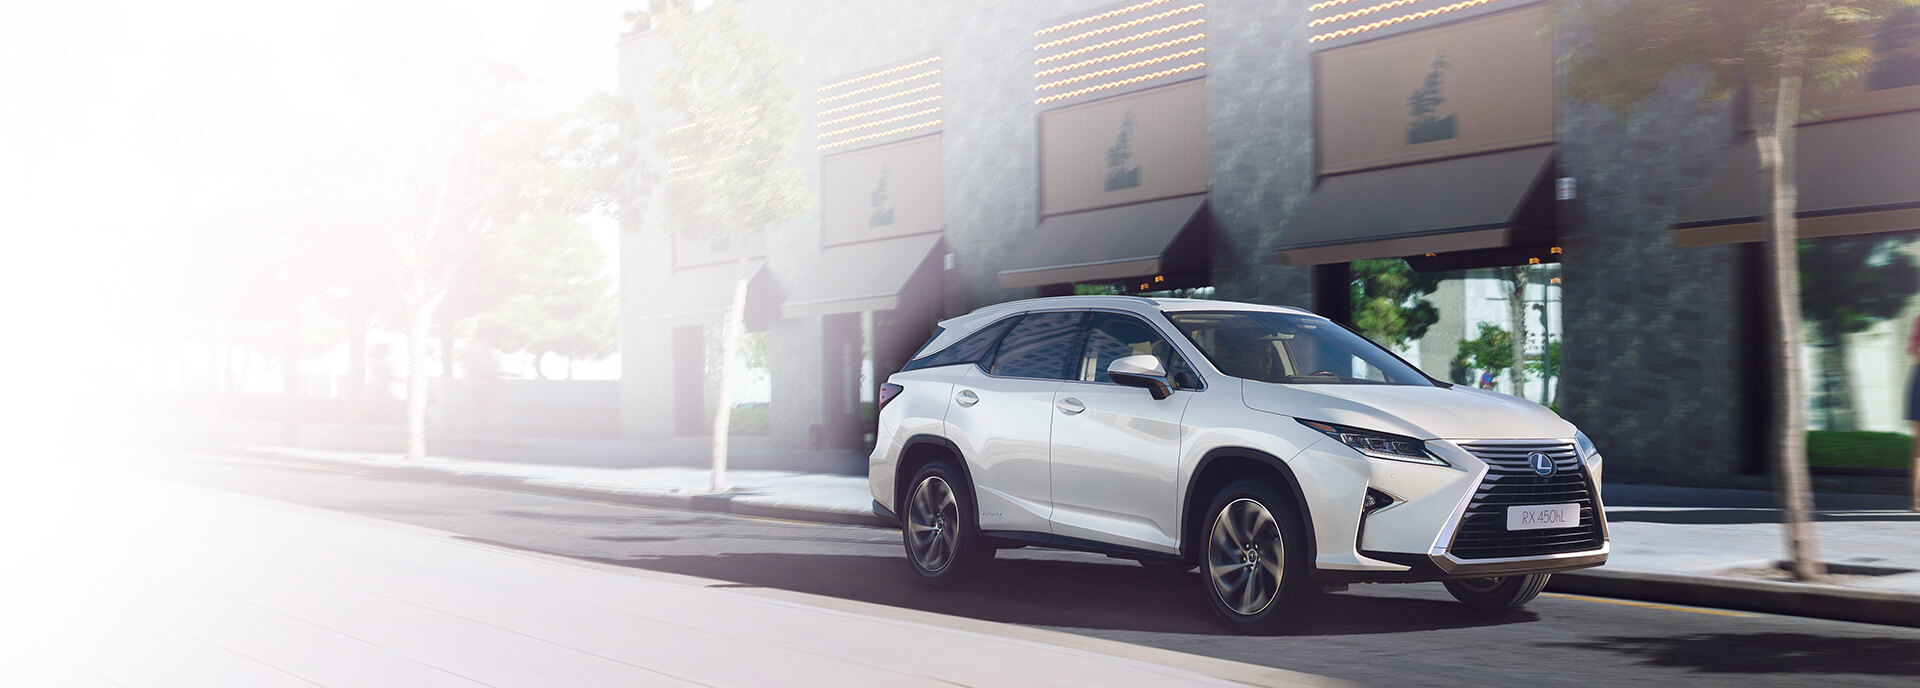 2018 lexus rx long wheelbase hero